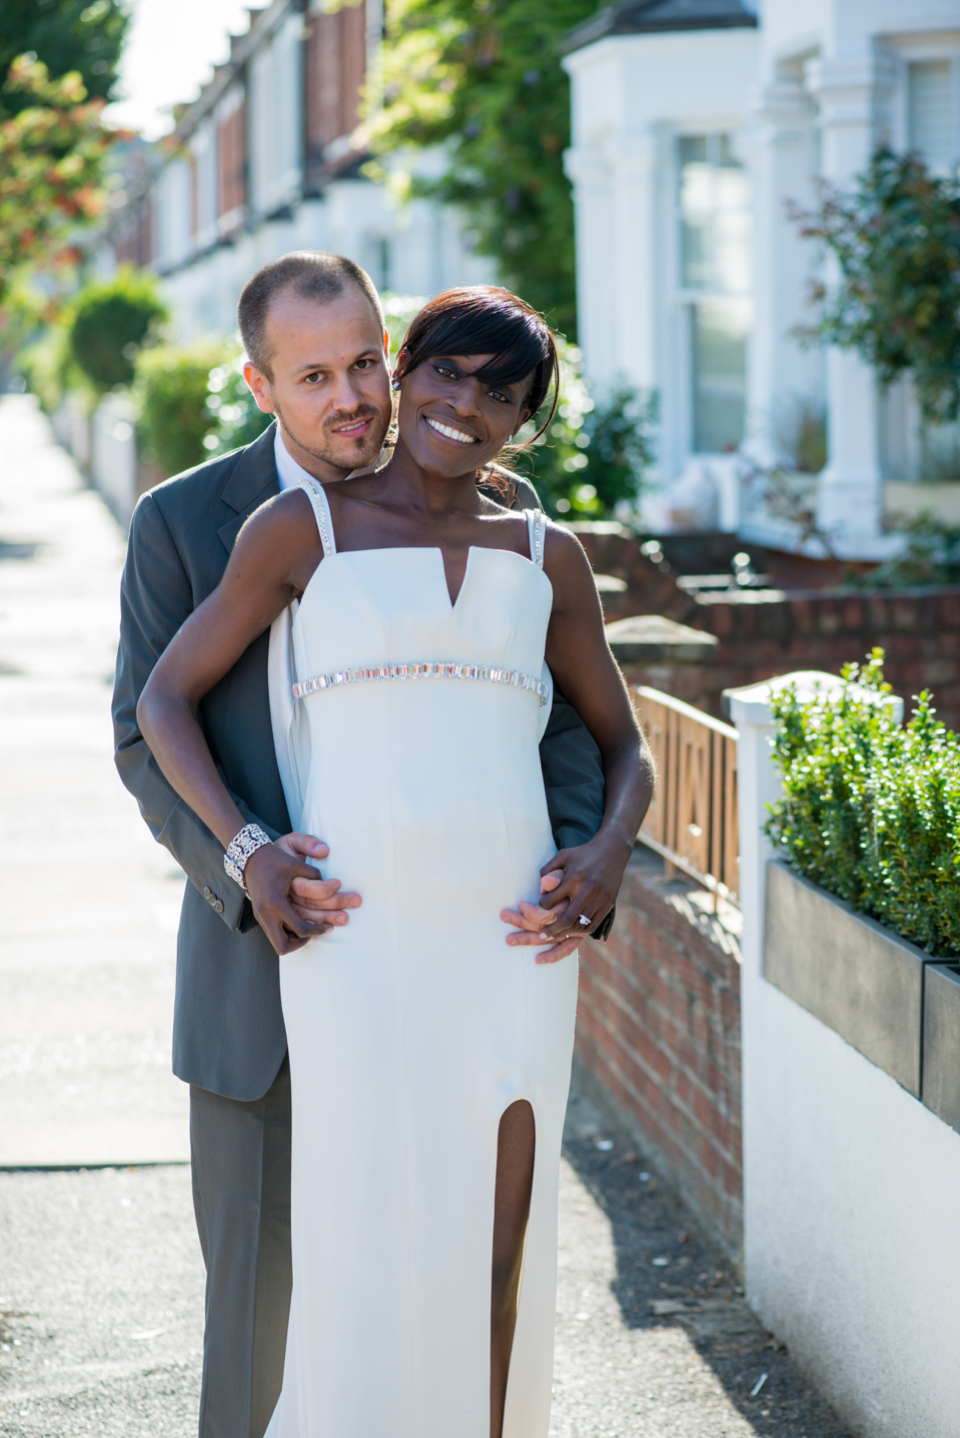 A Glamorous, Backless Wedding Dress for a Relaxed Stay At Home Wedding